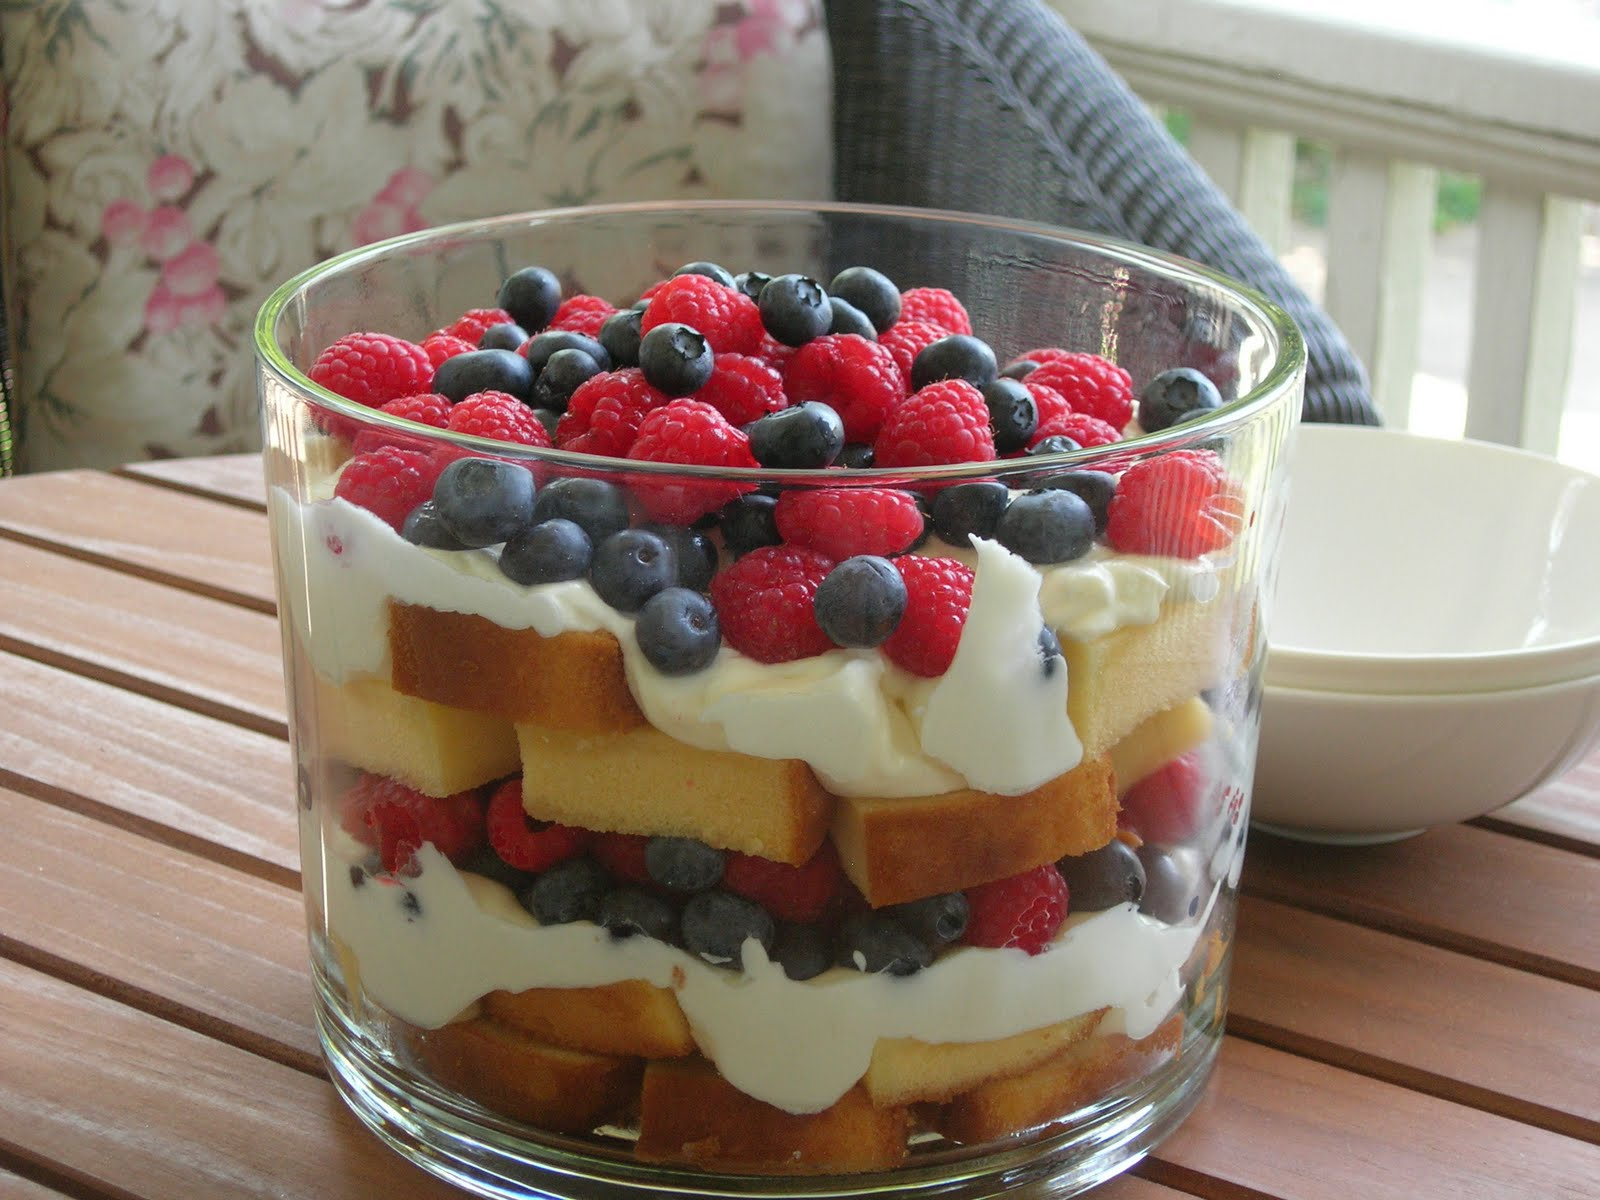 My Little Bungalow: 4th of July - Red, White & Blueberry Trifle